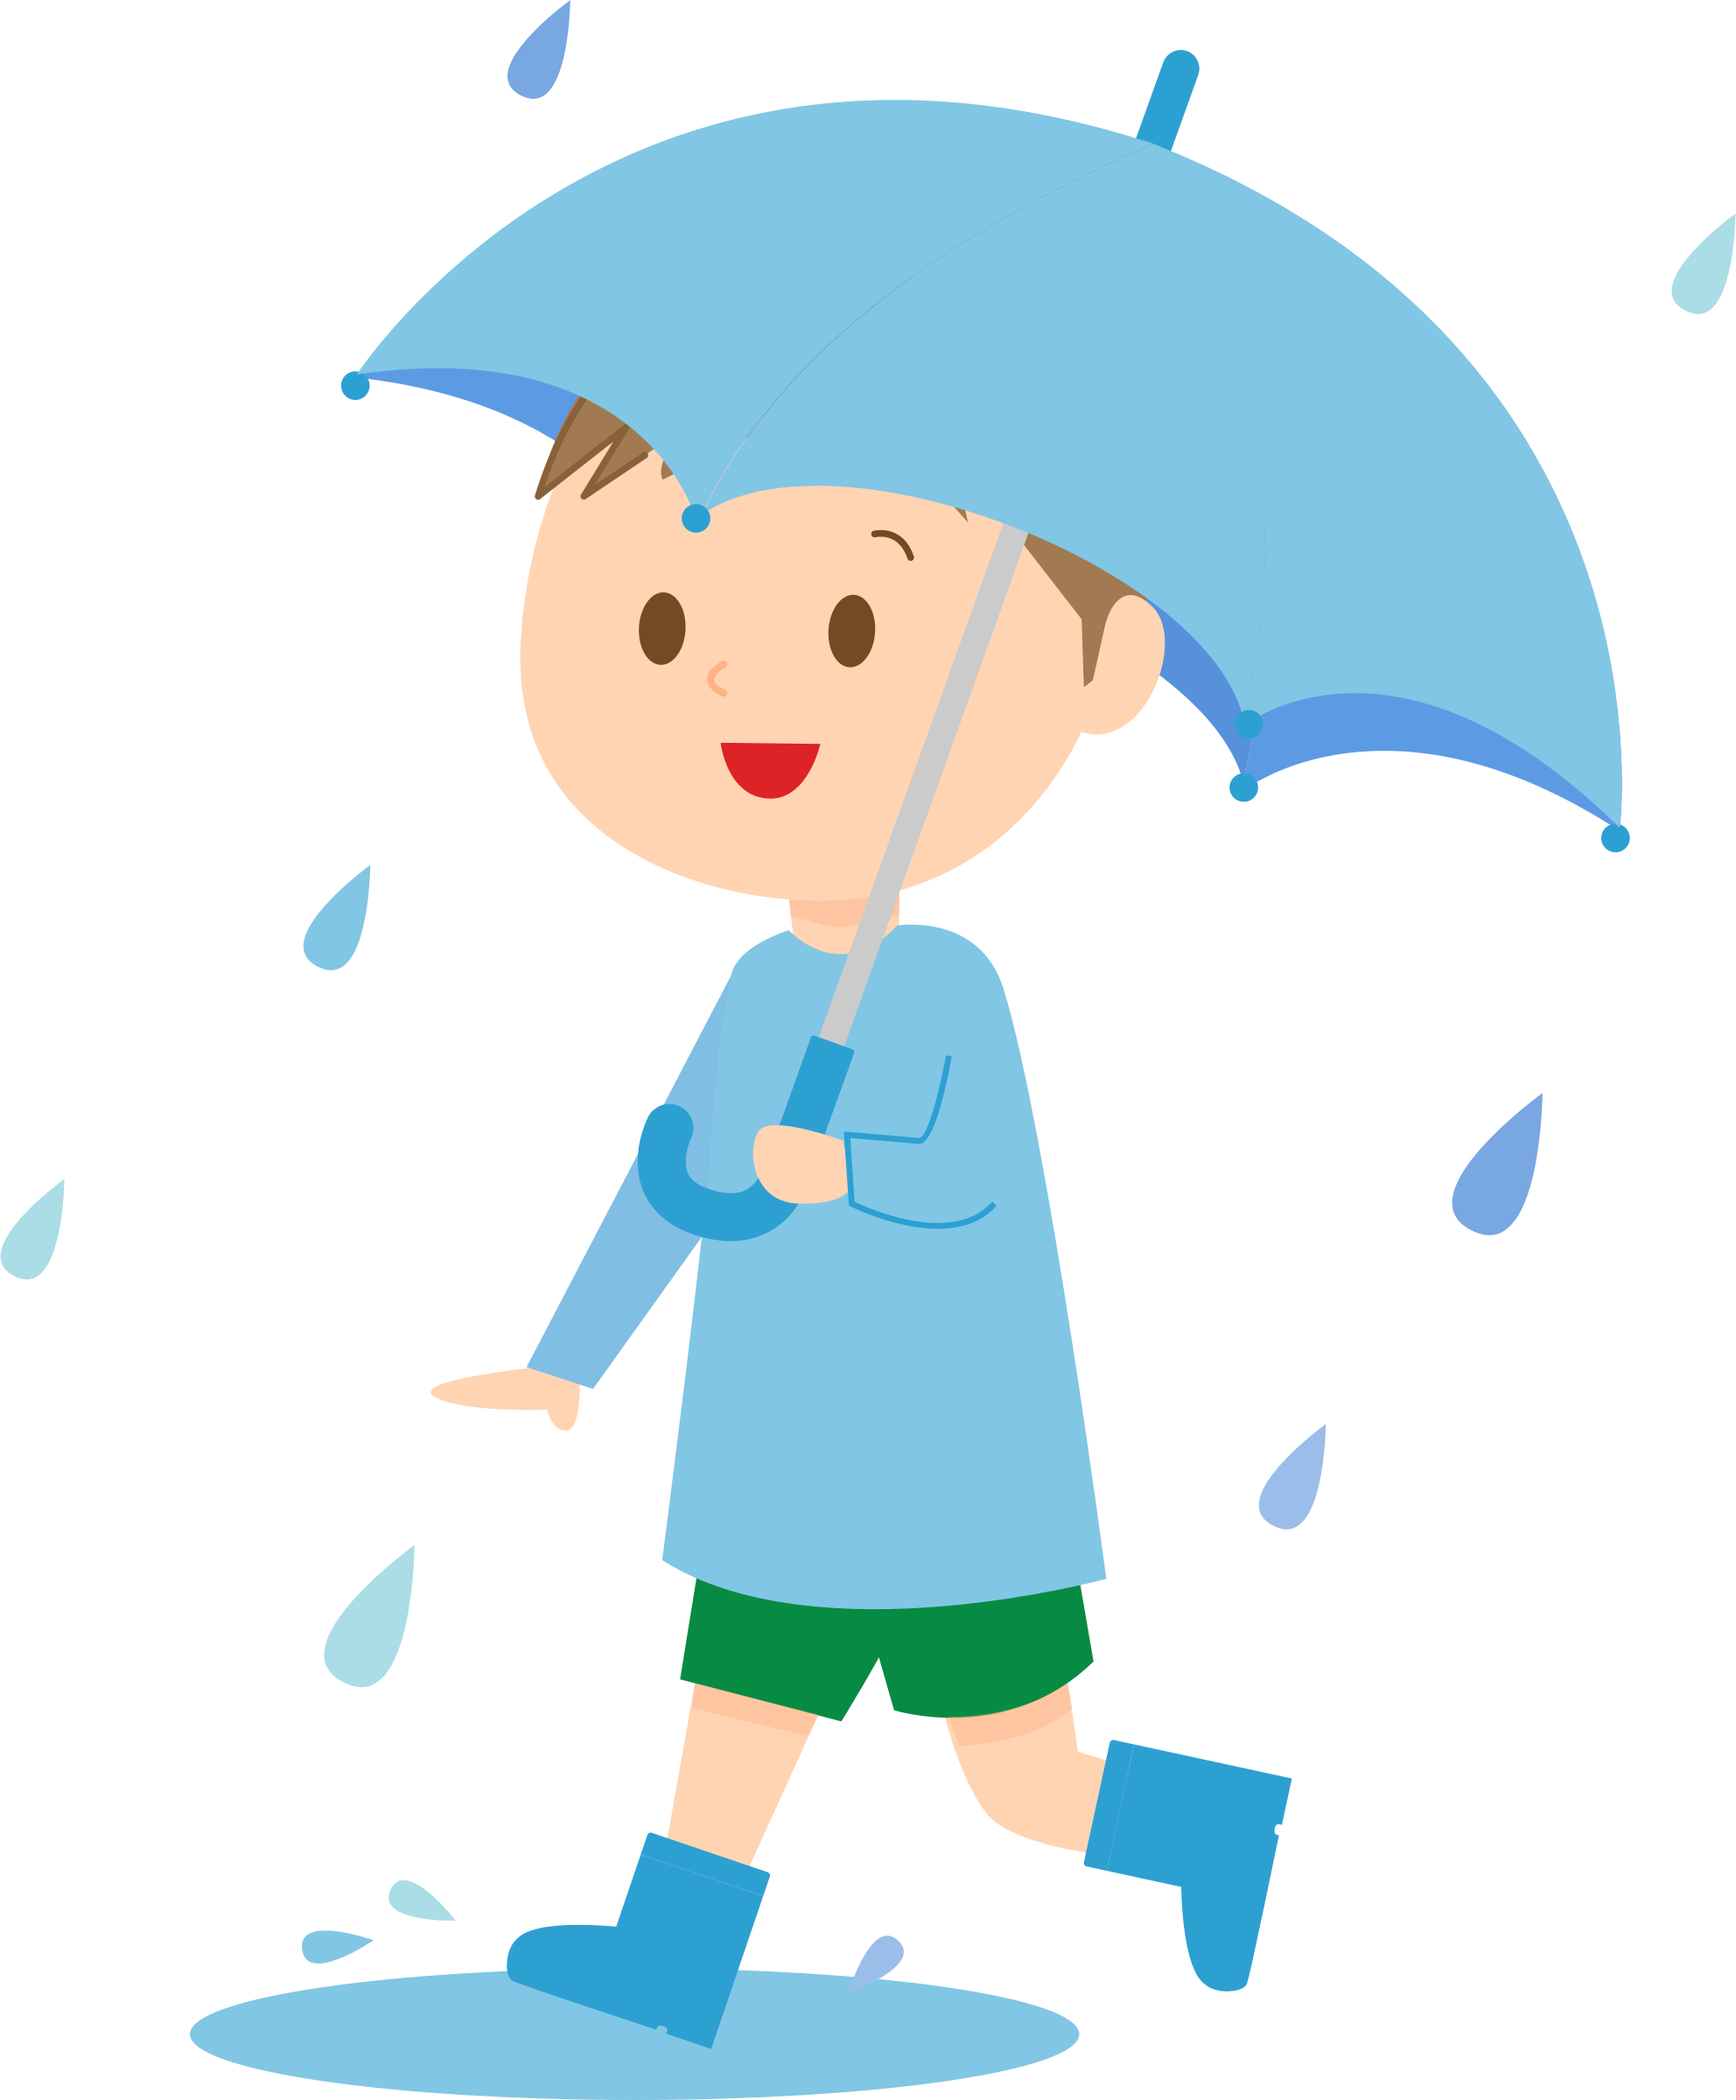 Kid baseball player clipart graphic free Boy With Umbrella Clipart & Boy With Umbrella Clip Art Images #3842 ... graphic free